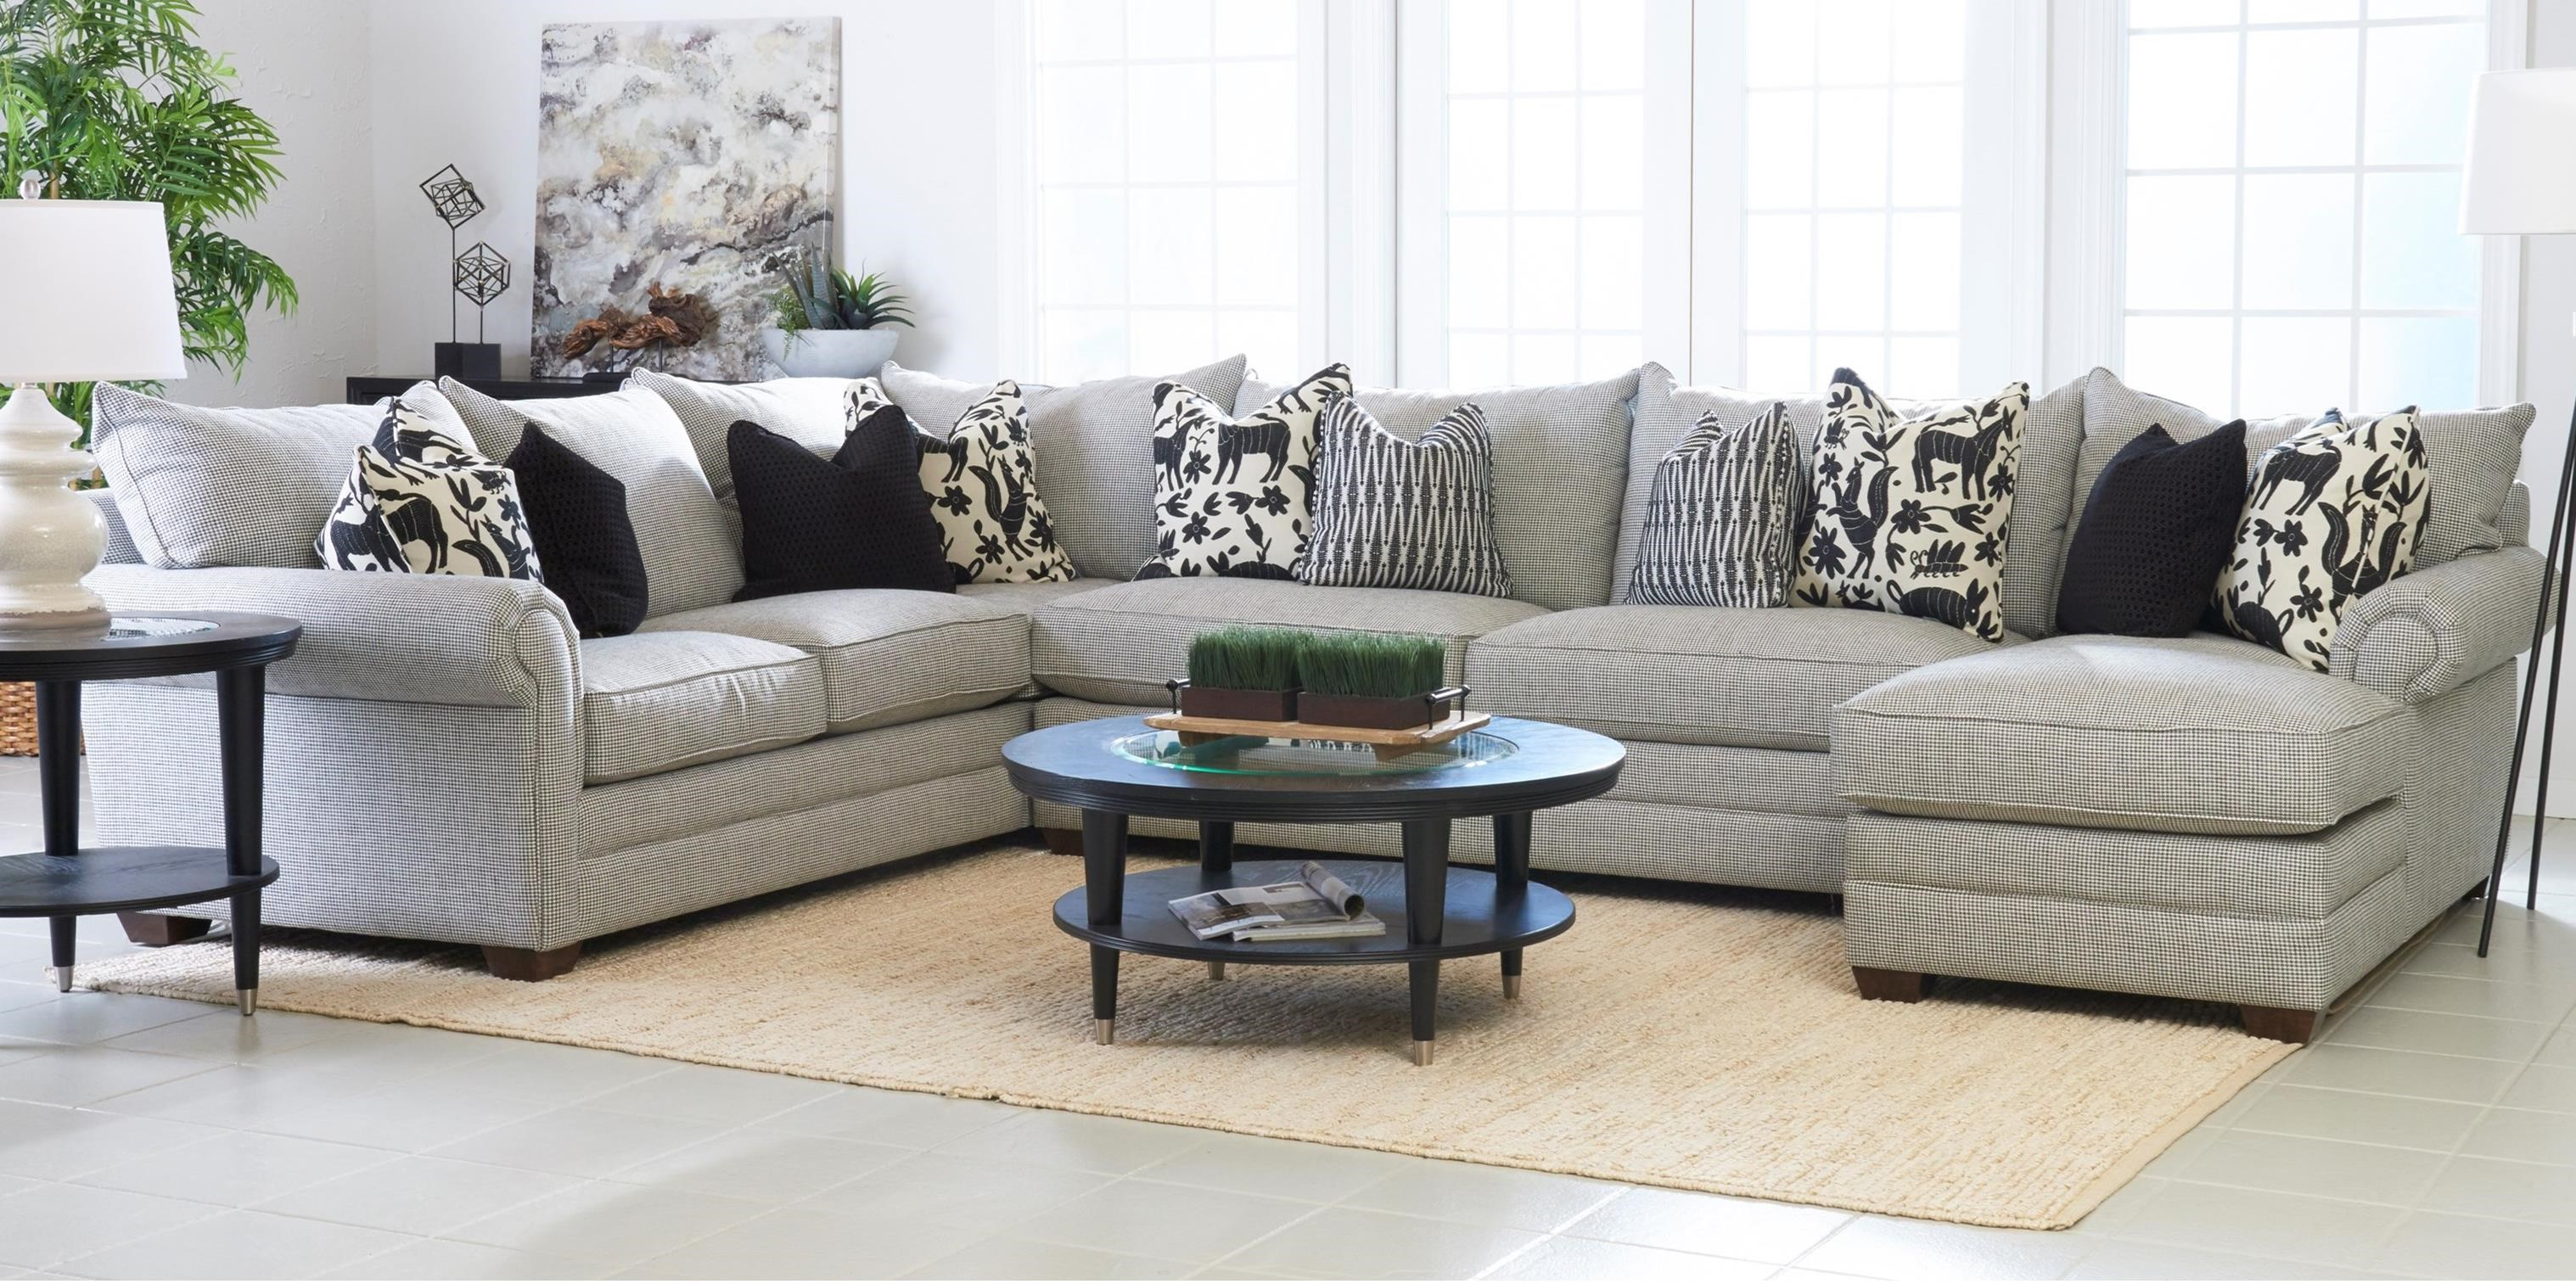 Huntley 3 Pc Sectional Sofa w/ RAF Chaise by Klaussner at Johnny Janosik